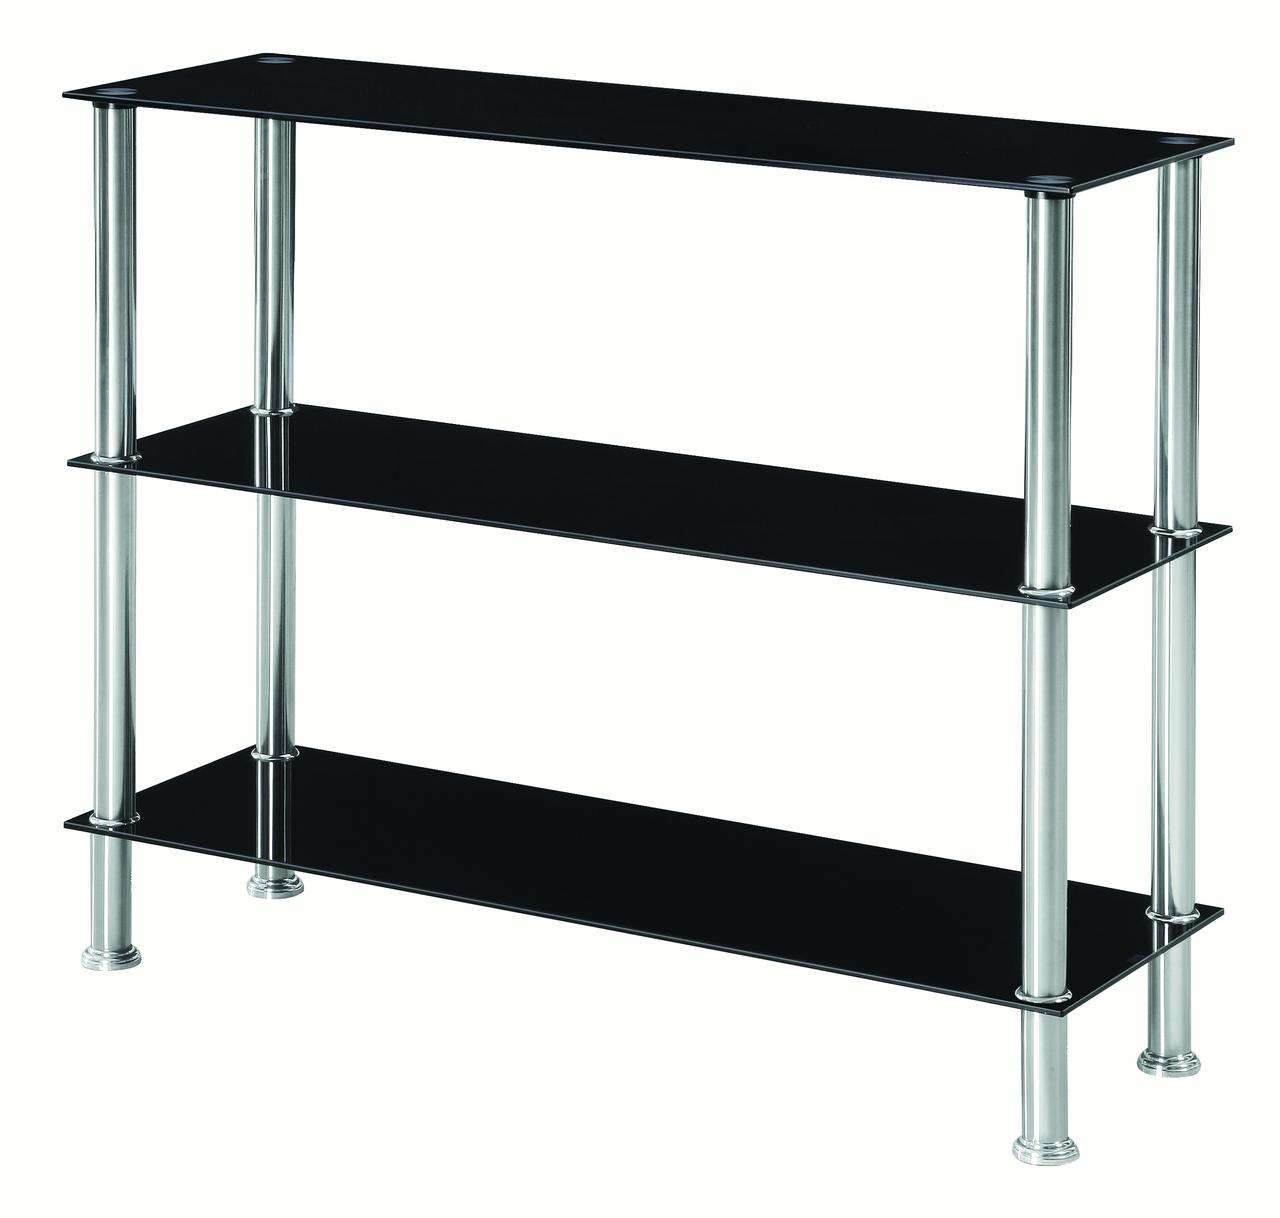 Glass 3 Tiers Console Table Bookshelf Black